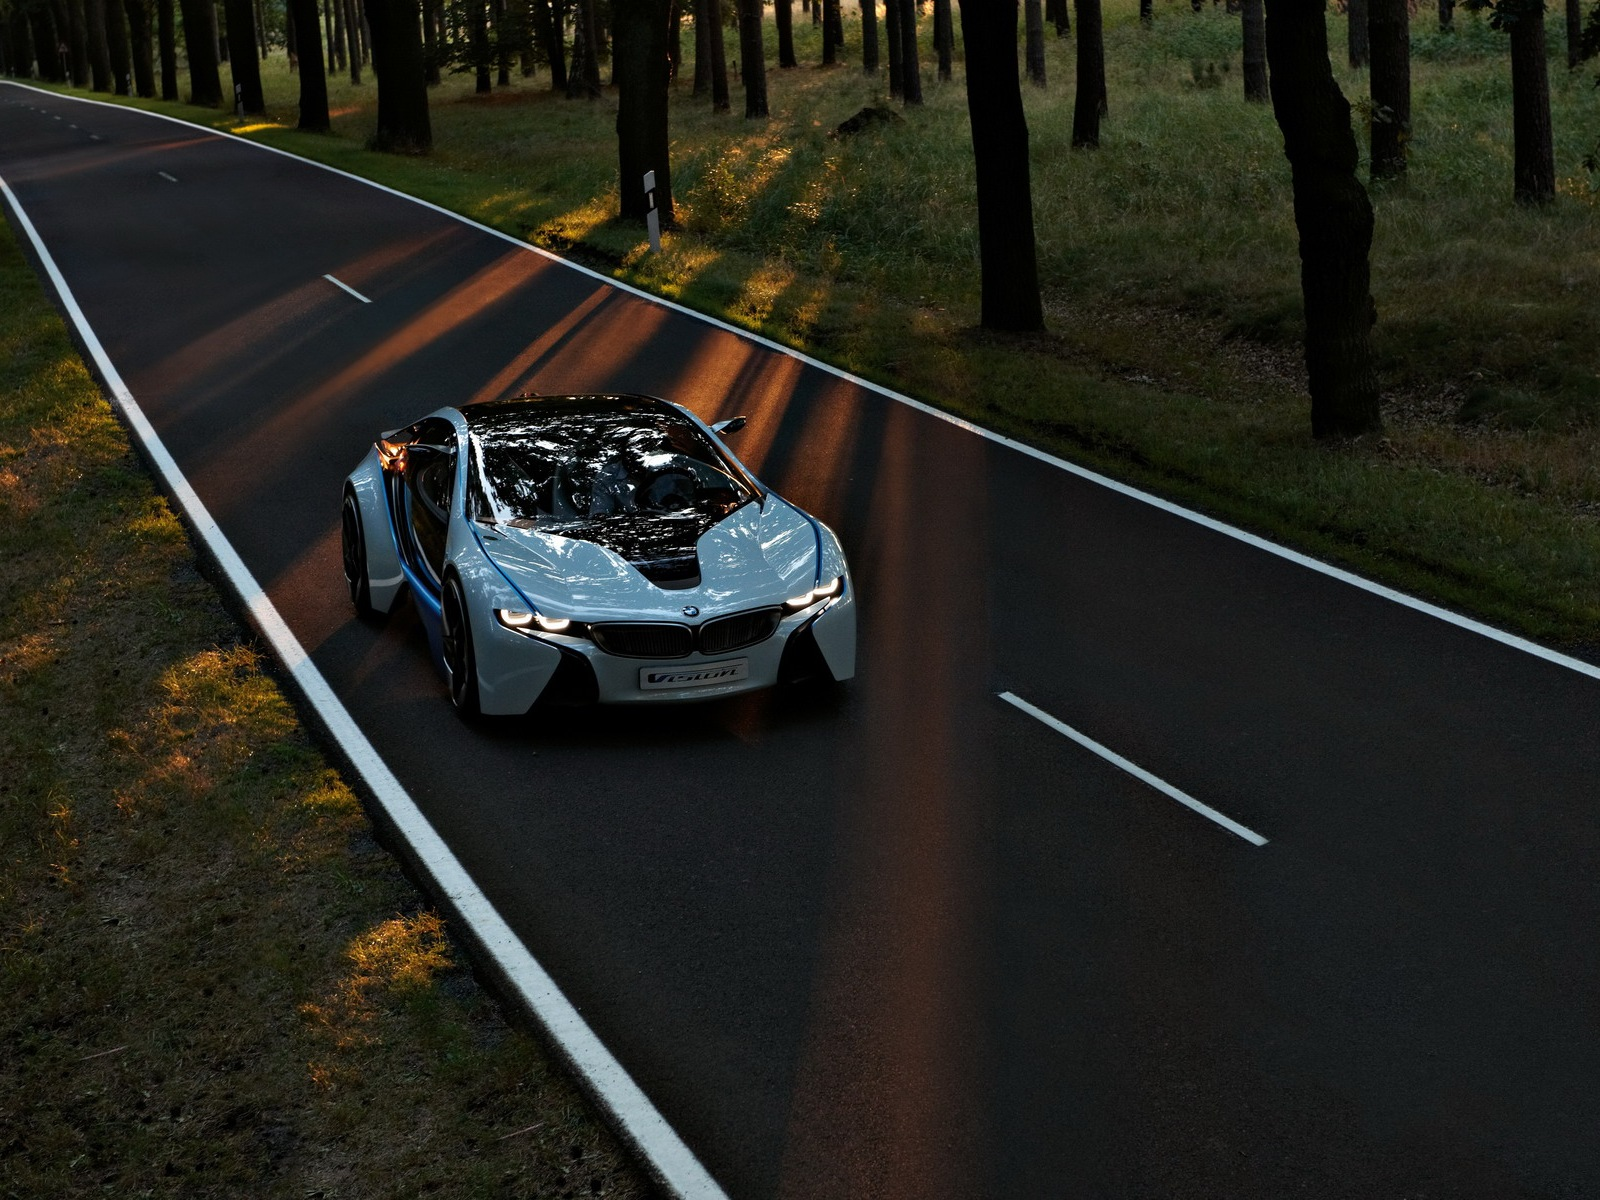 bmw-vision-efficientdynamics-06.jpg